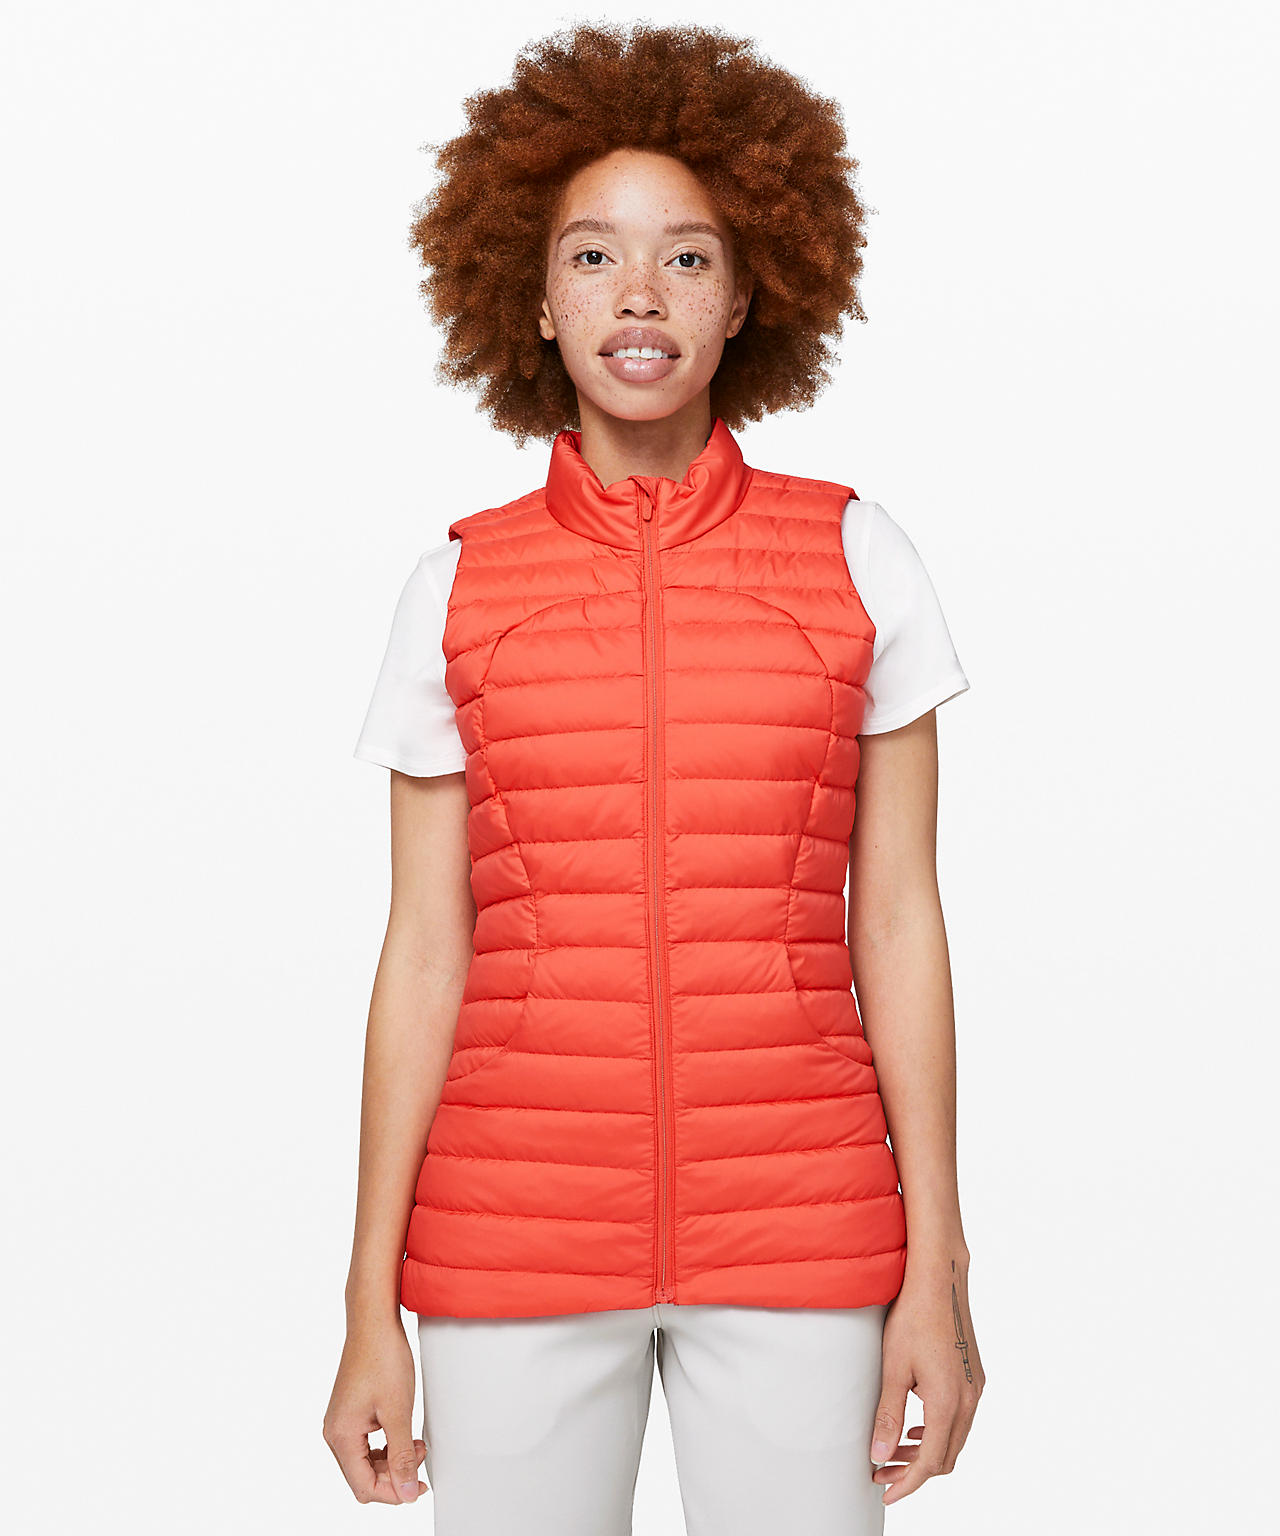 Pack It Down vest, Lululemon Upload